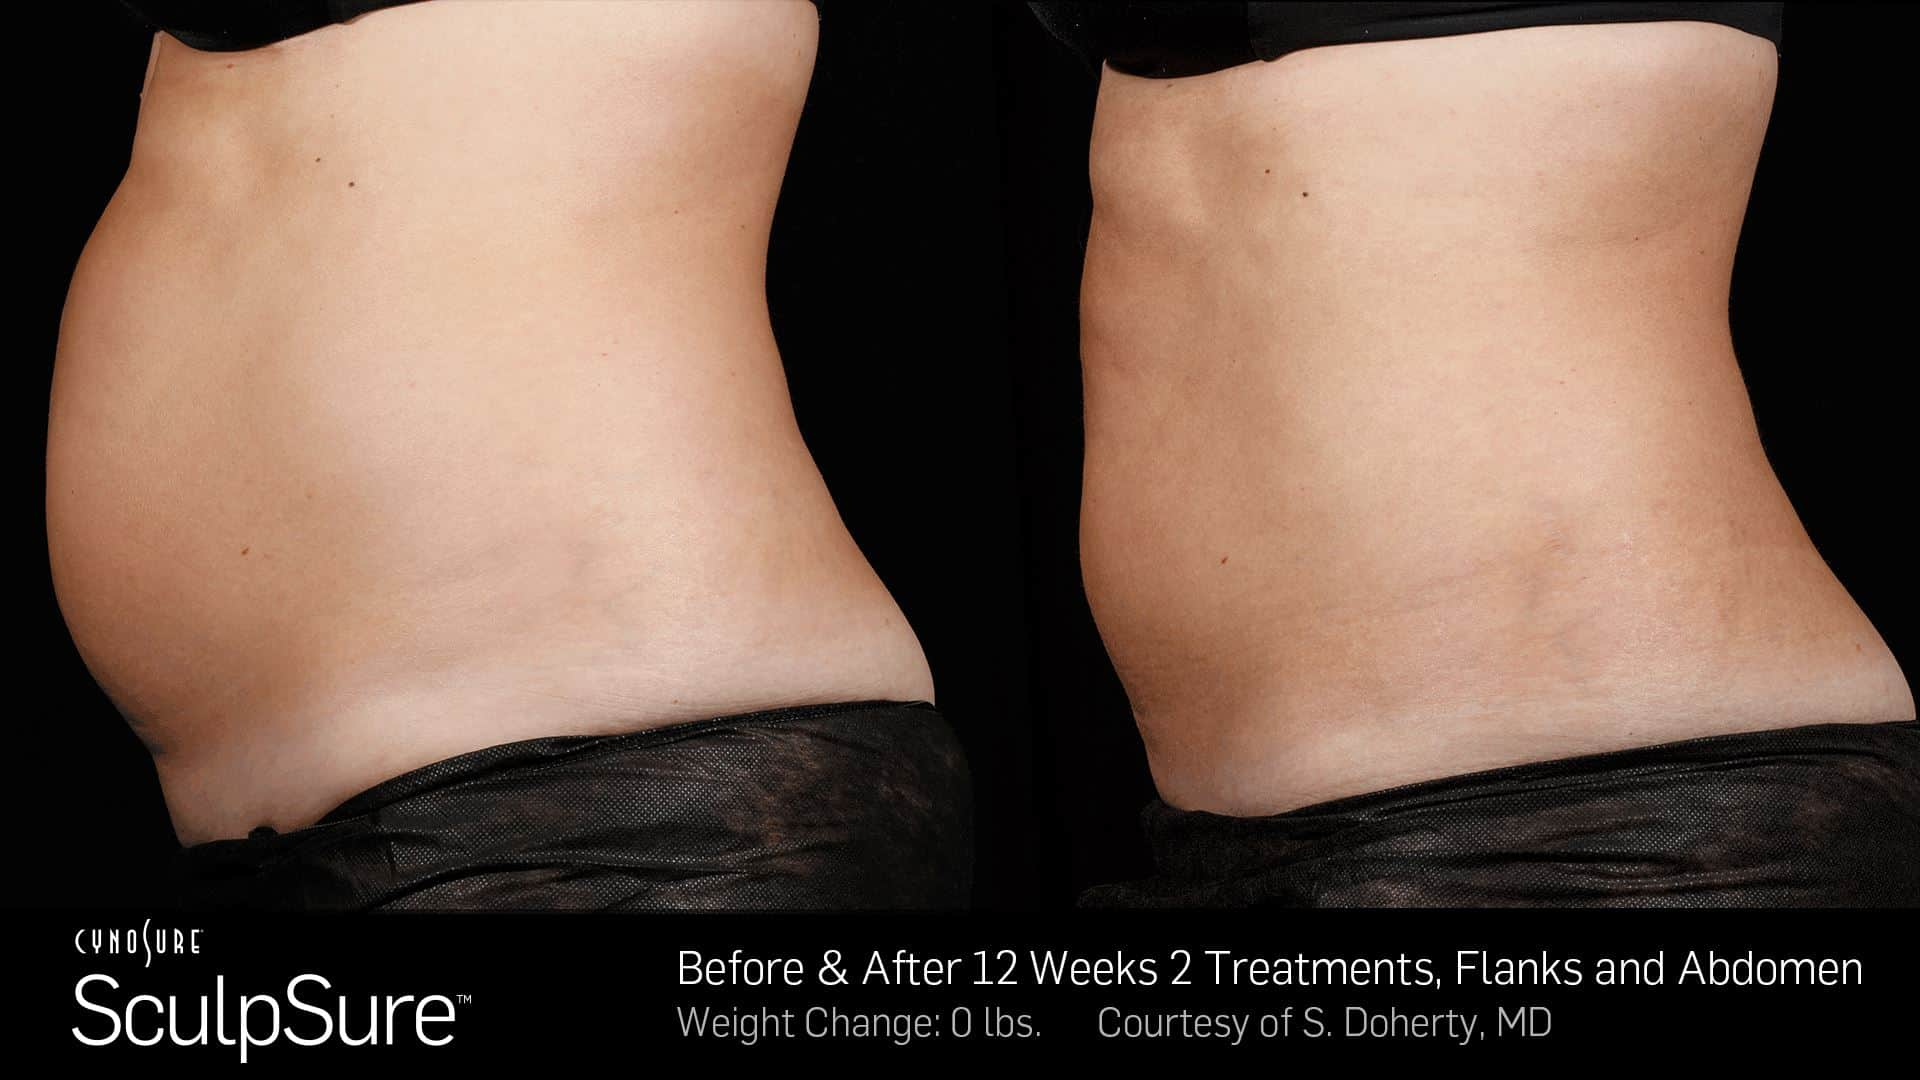 Sculpsure before & after